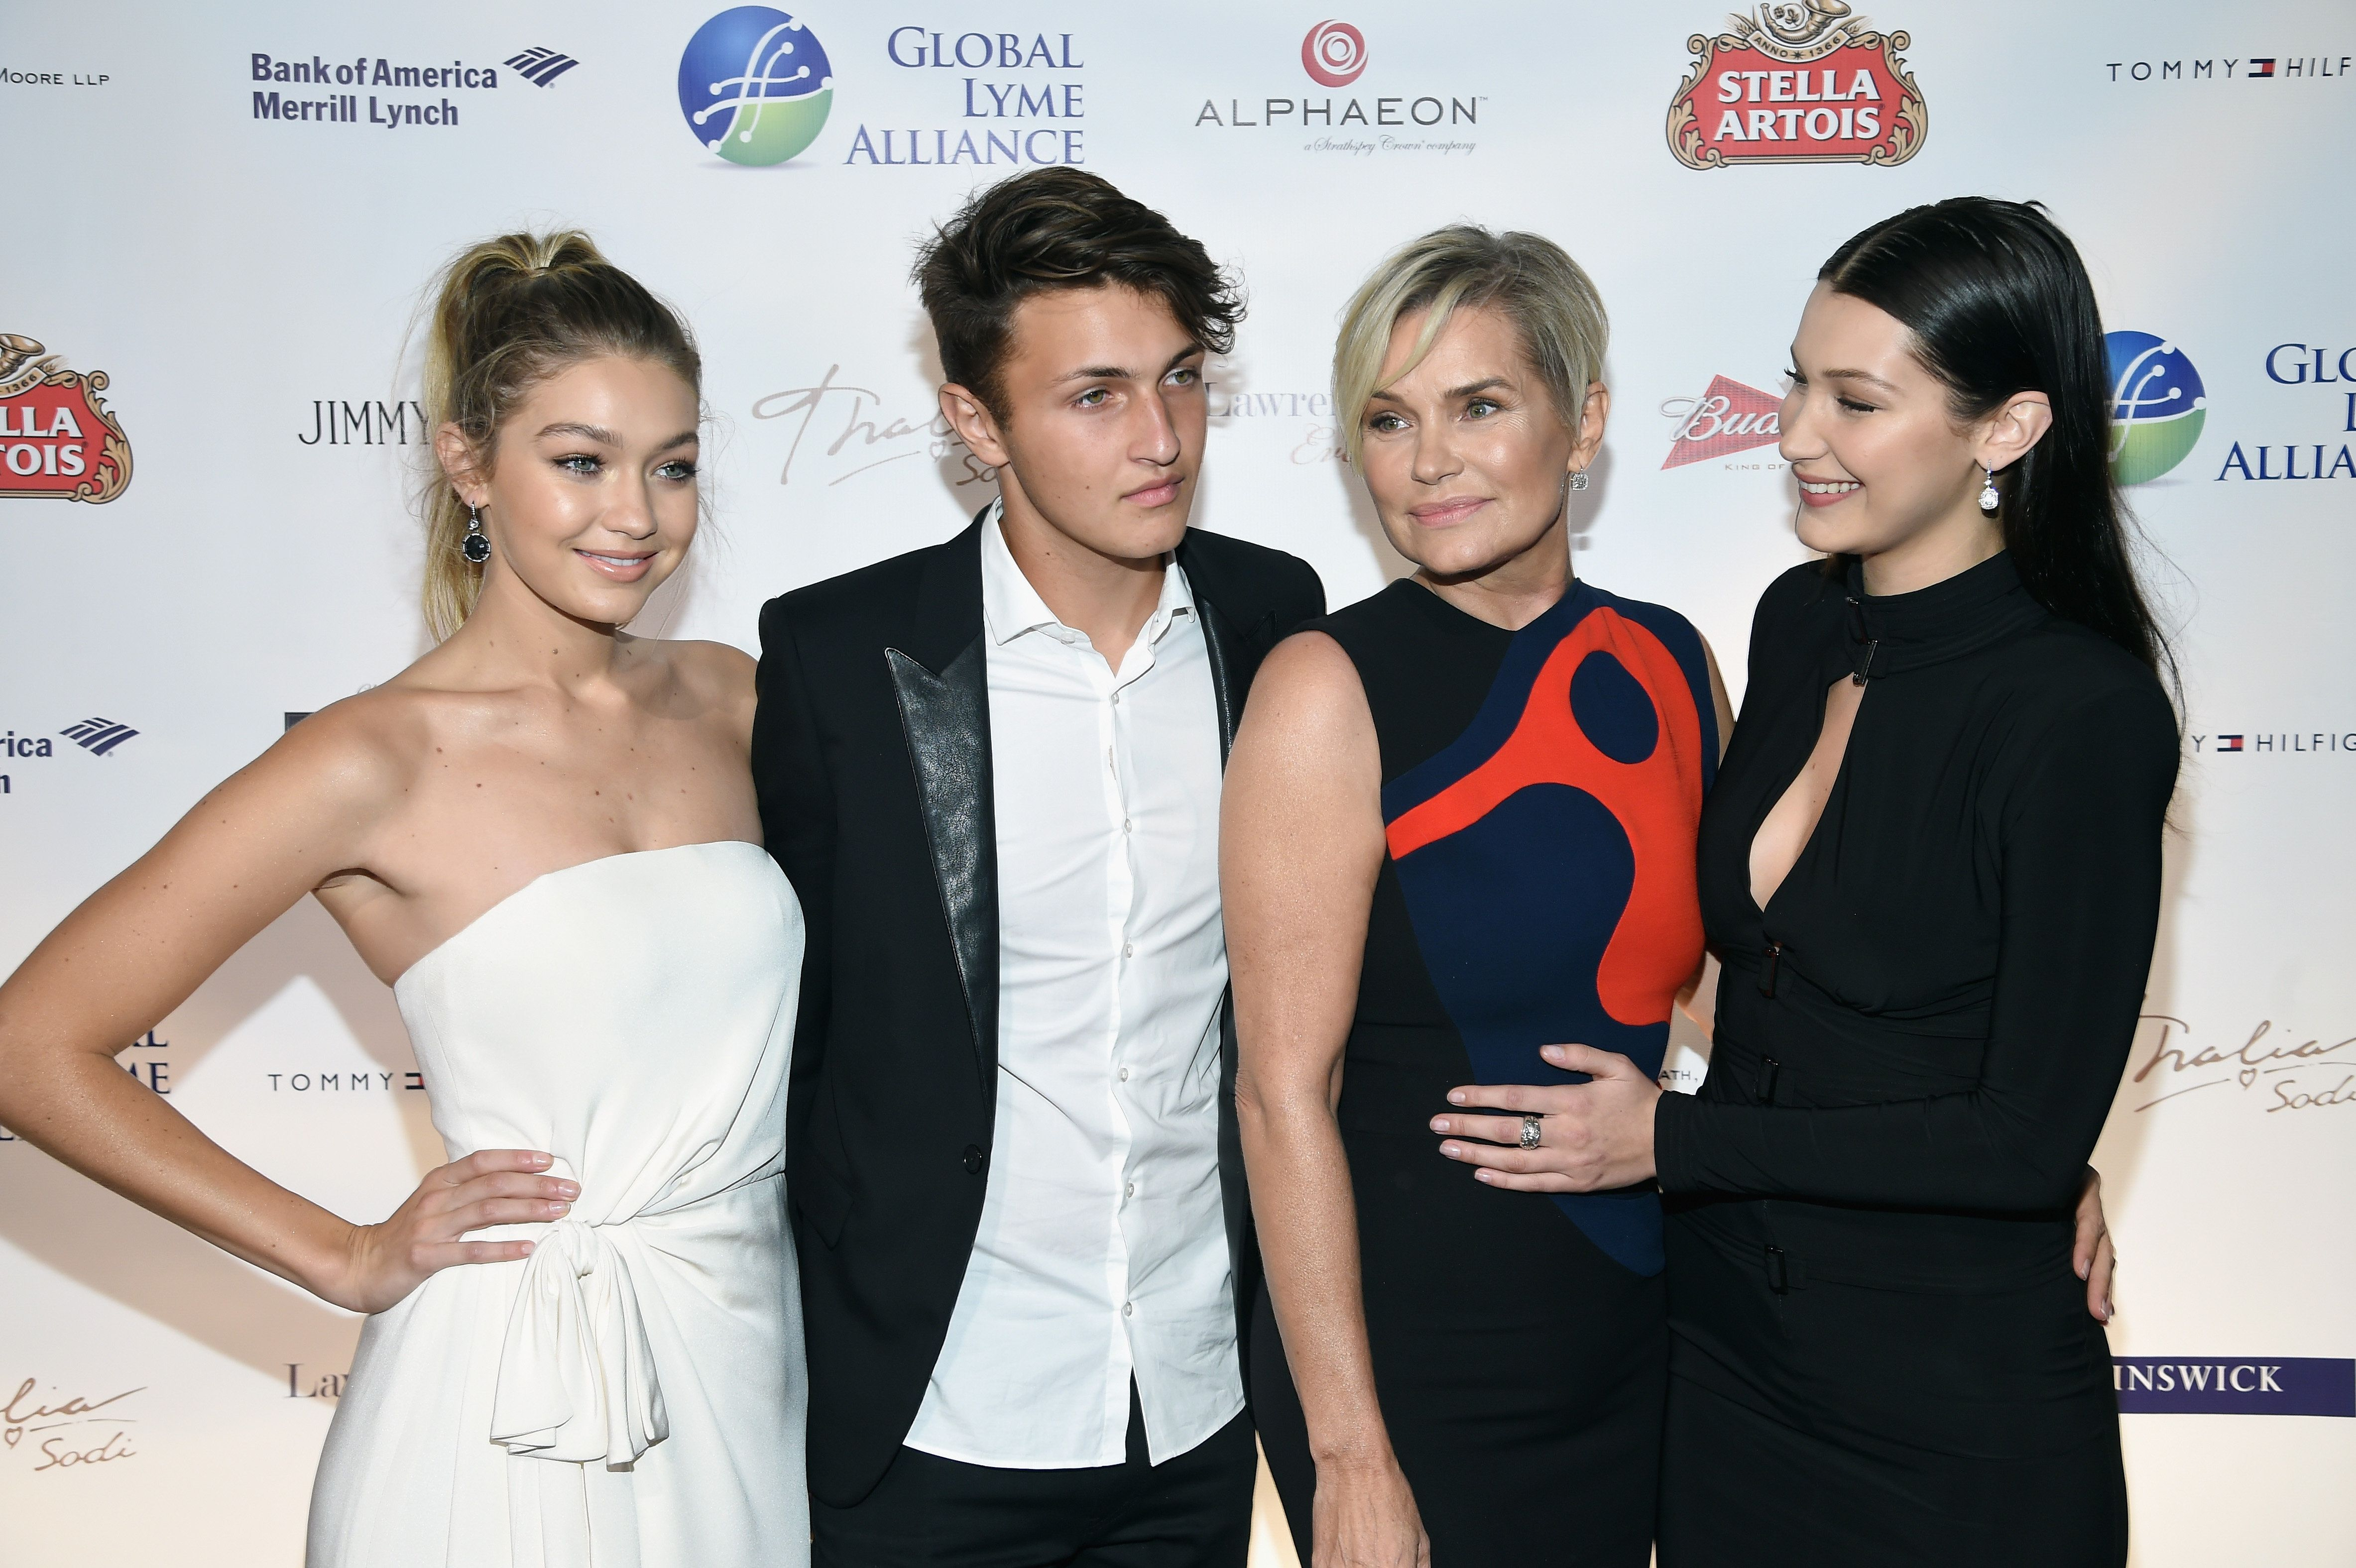 NEW YORK, NY - OCTOBER 08:  (L-R) Gigi Hadid, Anwar Hadid, Yolanda Foster and Bella Hadid attend the Global Lyme Alliance 'Uniting for a Lyme-Free World' Inaugural Gala at Cipriani 42nd Street on October 8, 2015 in New York City.  (Photo by Dimitrios Kambouris/Getty Images for Global Lyme Alliance)